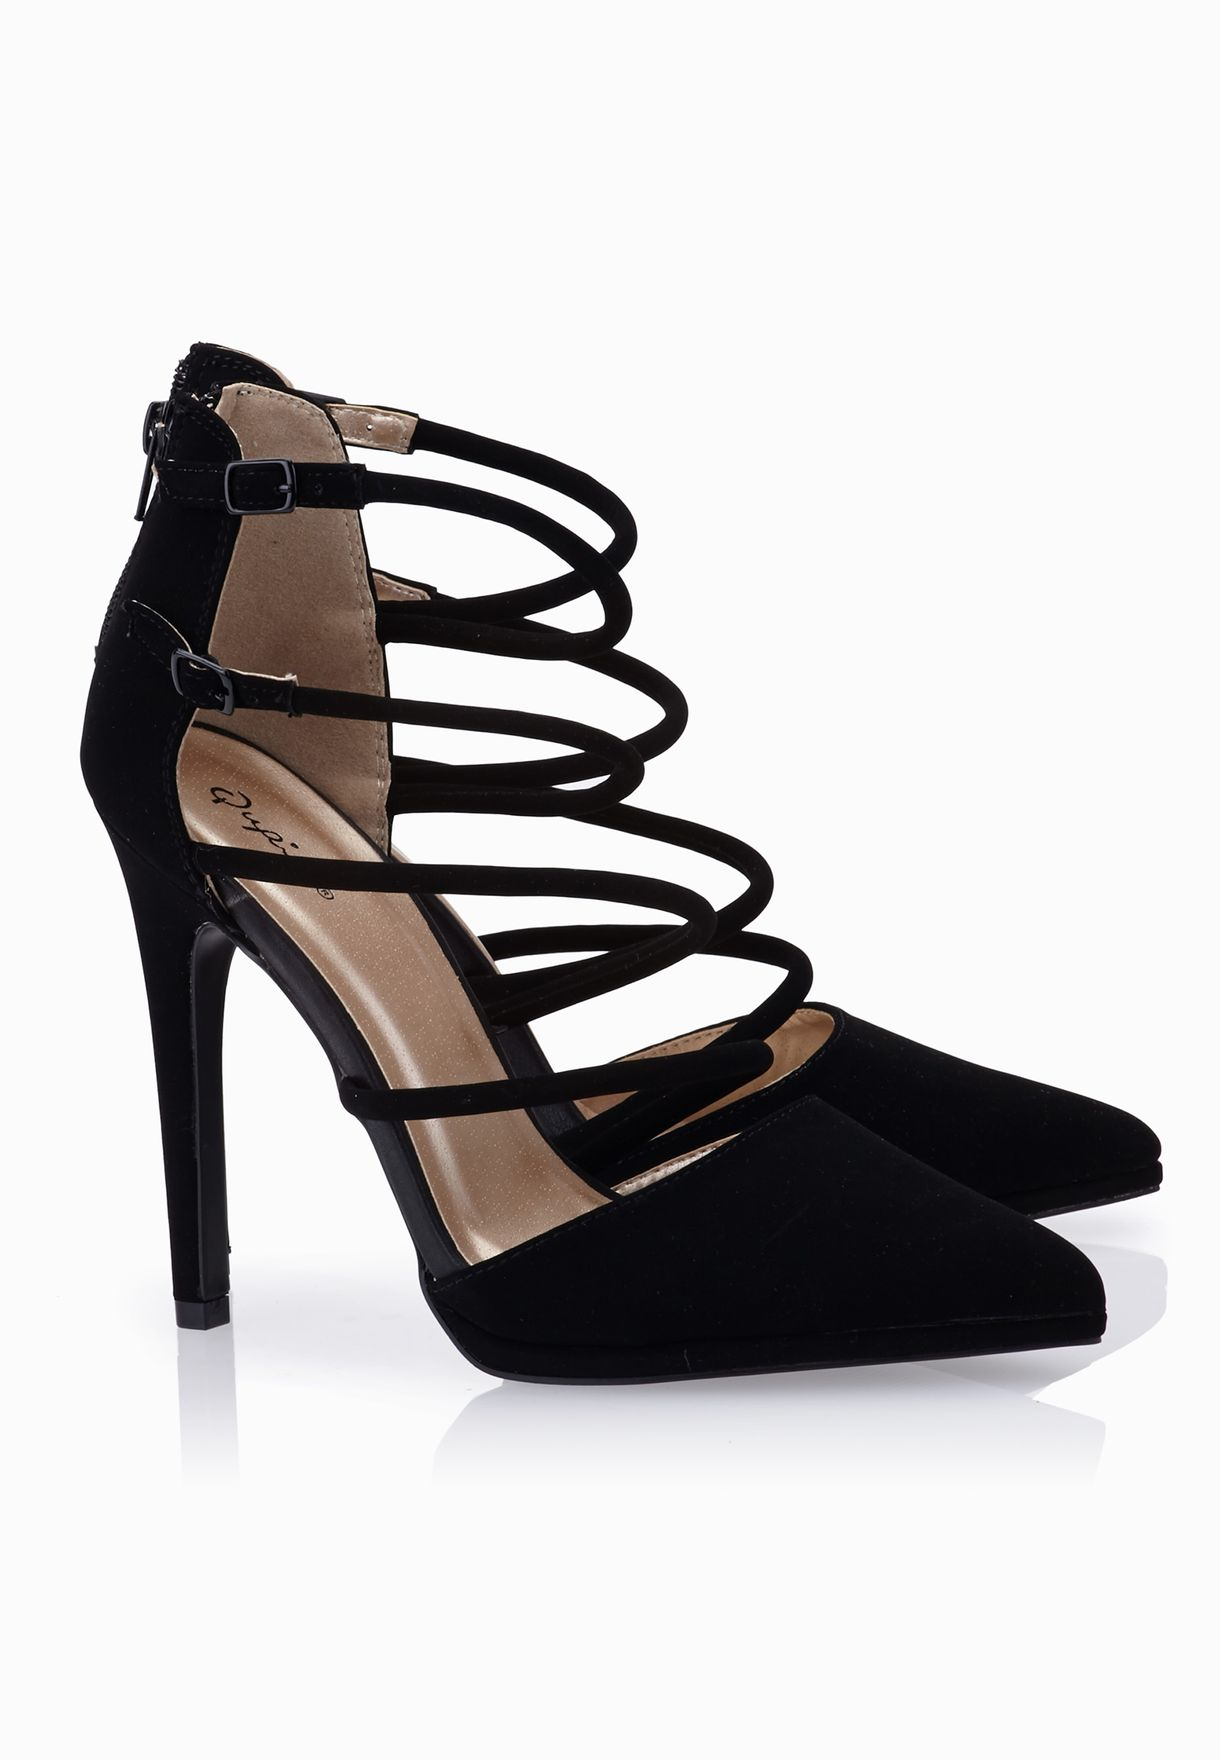 d2733048f1 Shop Qupid black Cut Out Buckled Pointy Toe Pumps for Women in Saudi ...